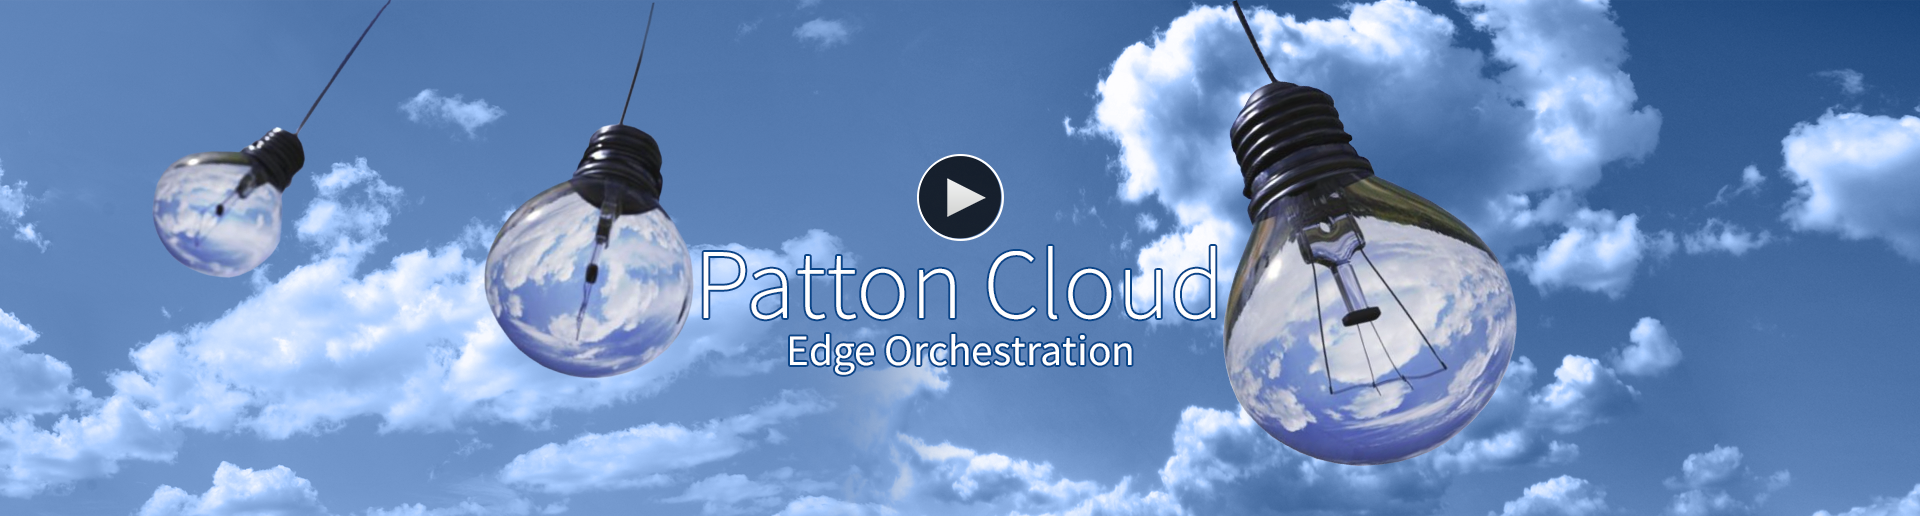 Patton Cloud